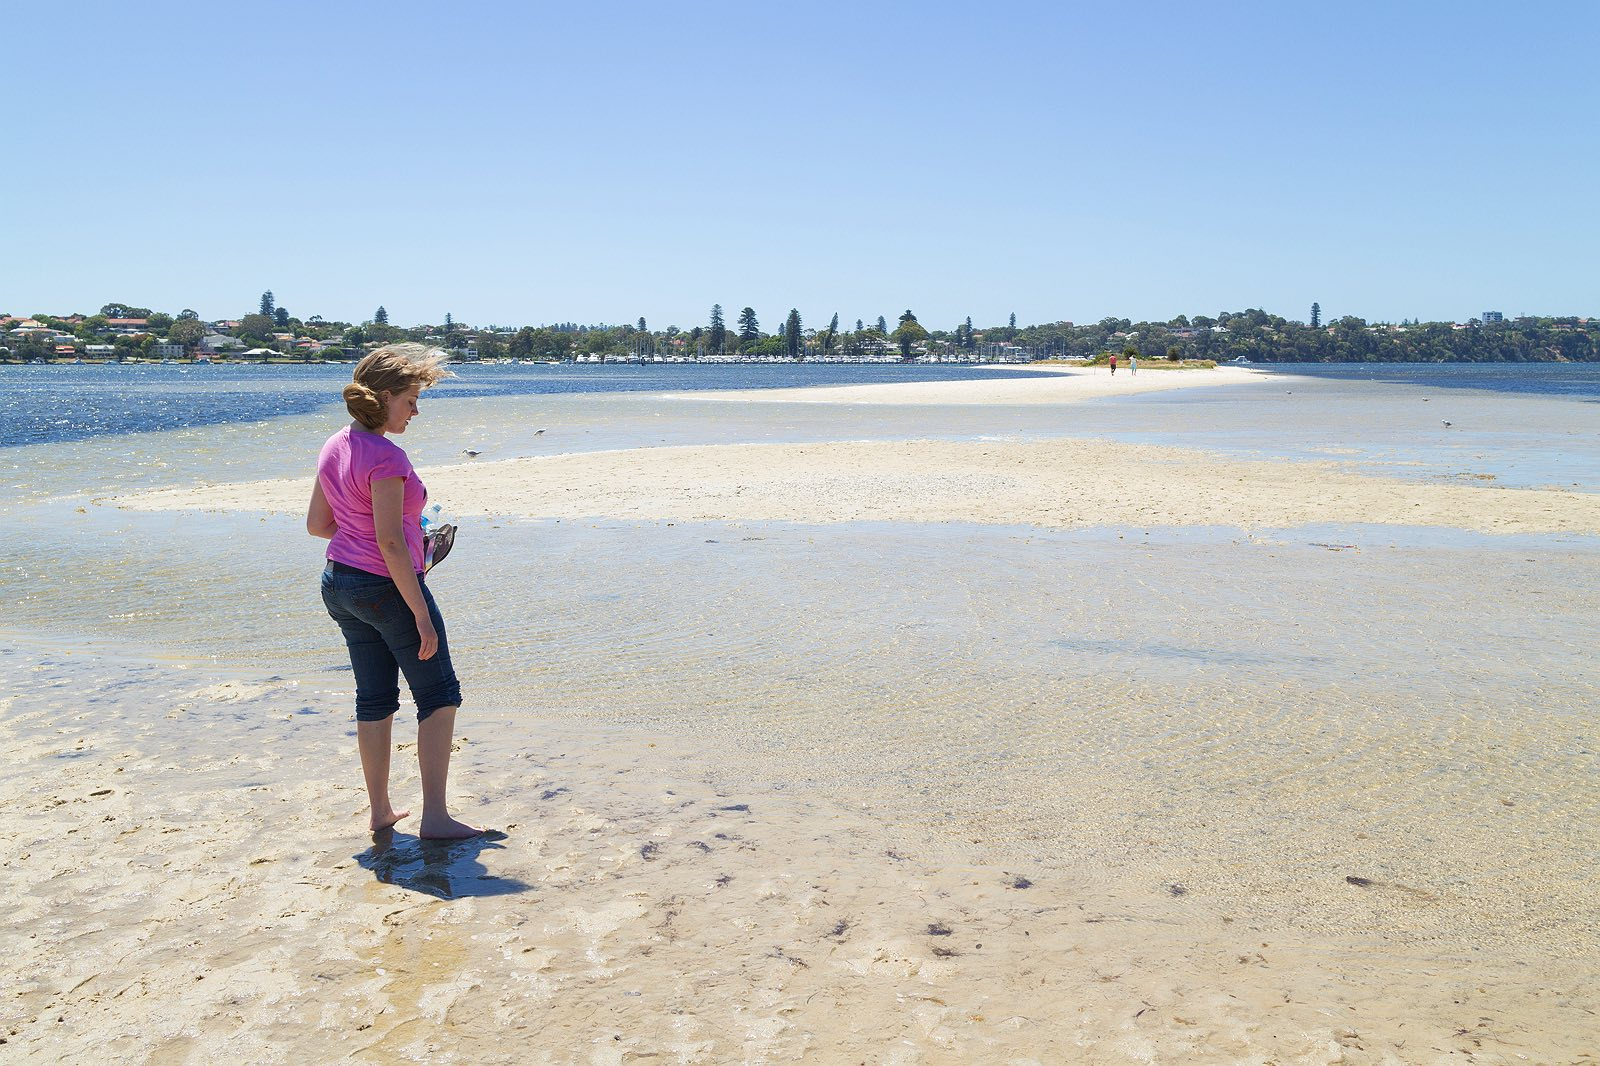 point-walter-swan-river-perth-9